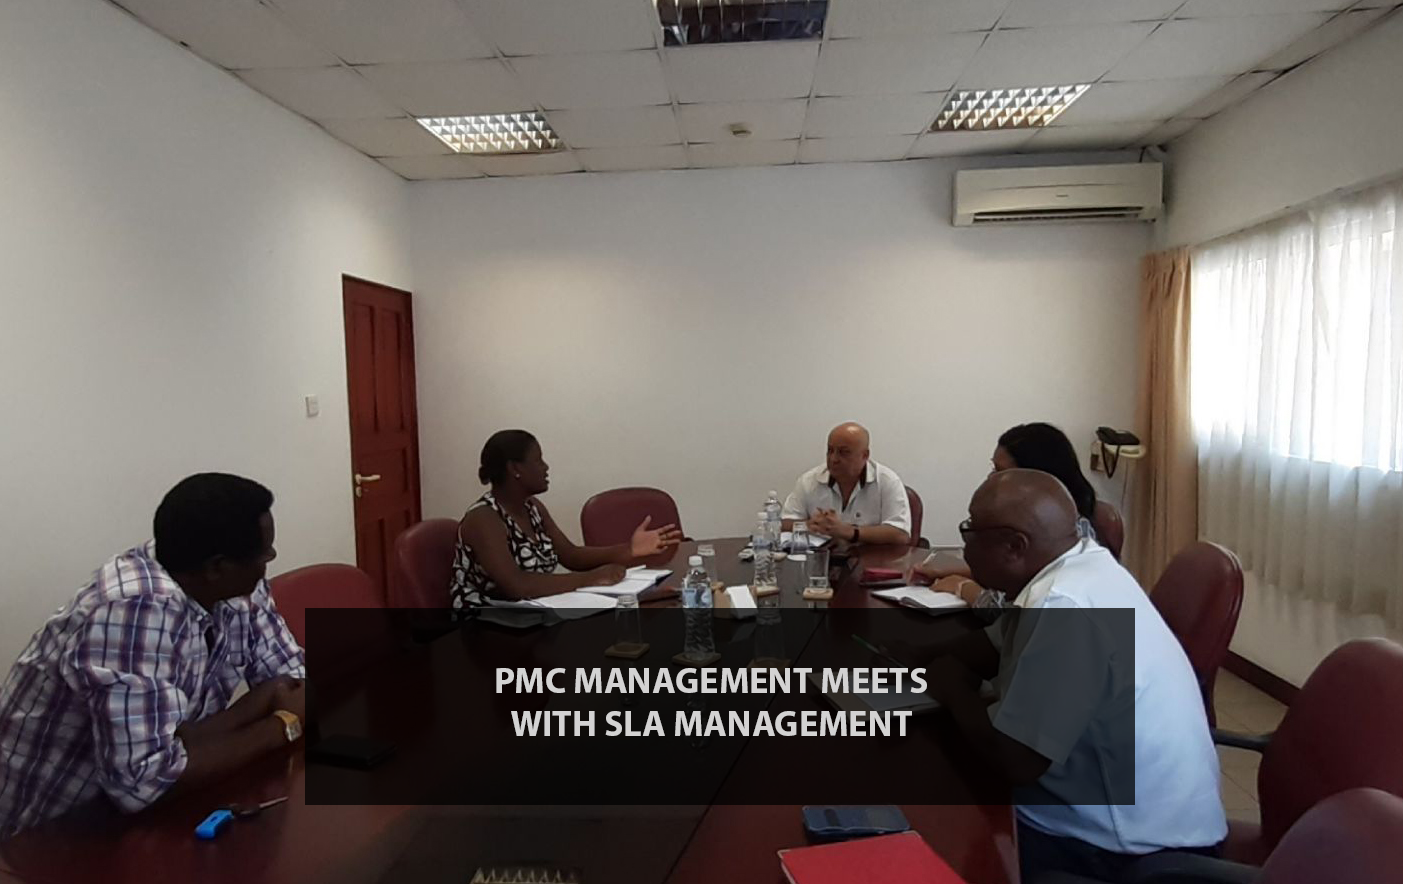 Meeting between PMC Management and SLA Management